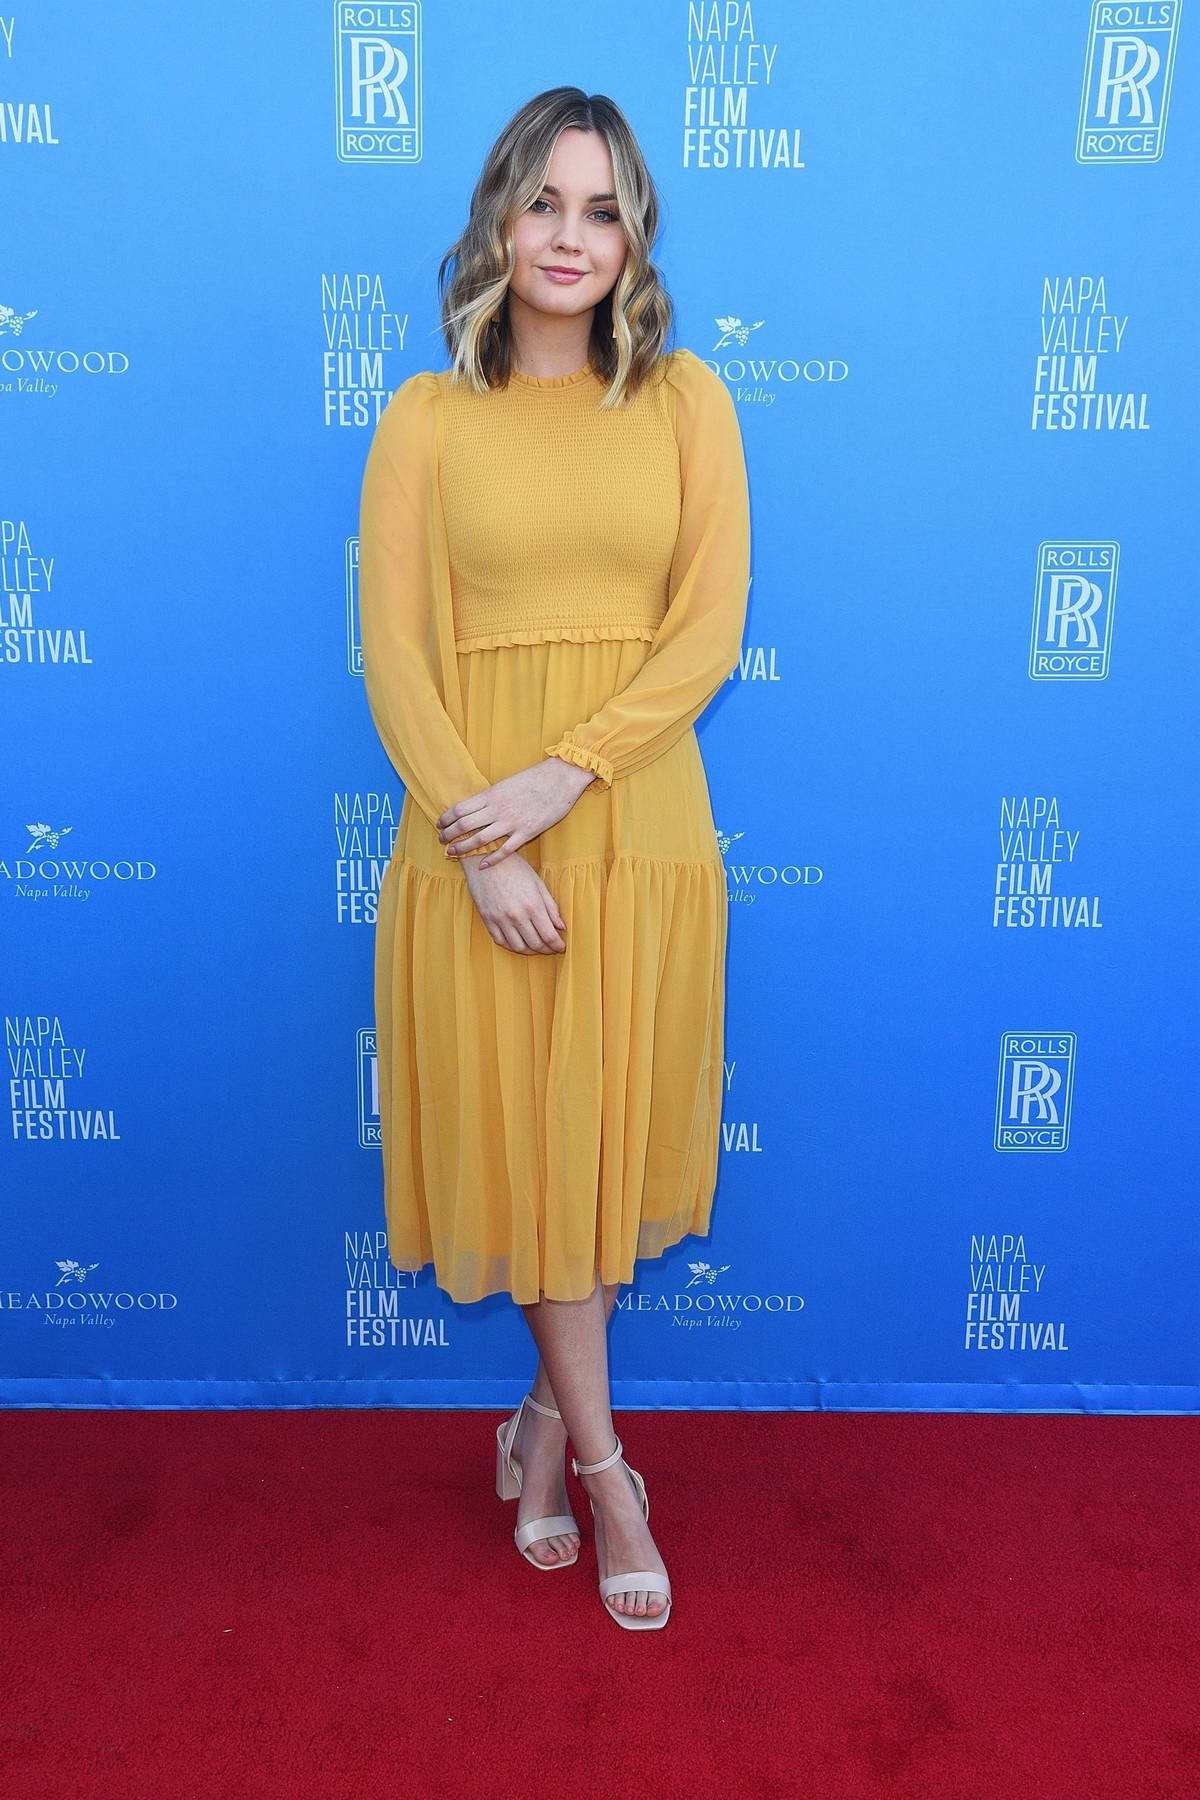 Liana Liberato attends the 'Rising Star' Showcase during the 2019 Napa Valley Film Festival in Napa, California